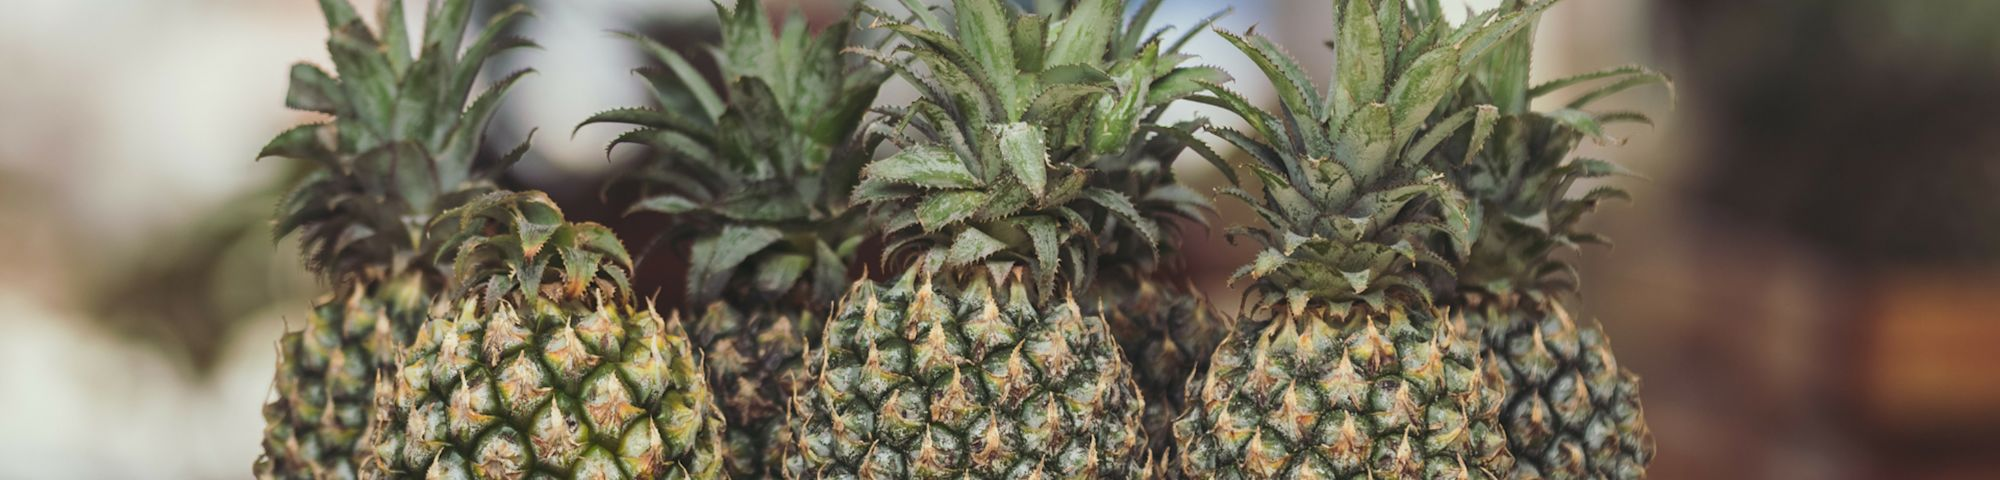 A lineup of pineapples. Pineapple leaf fibre can be used as a new natural material.